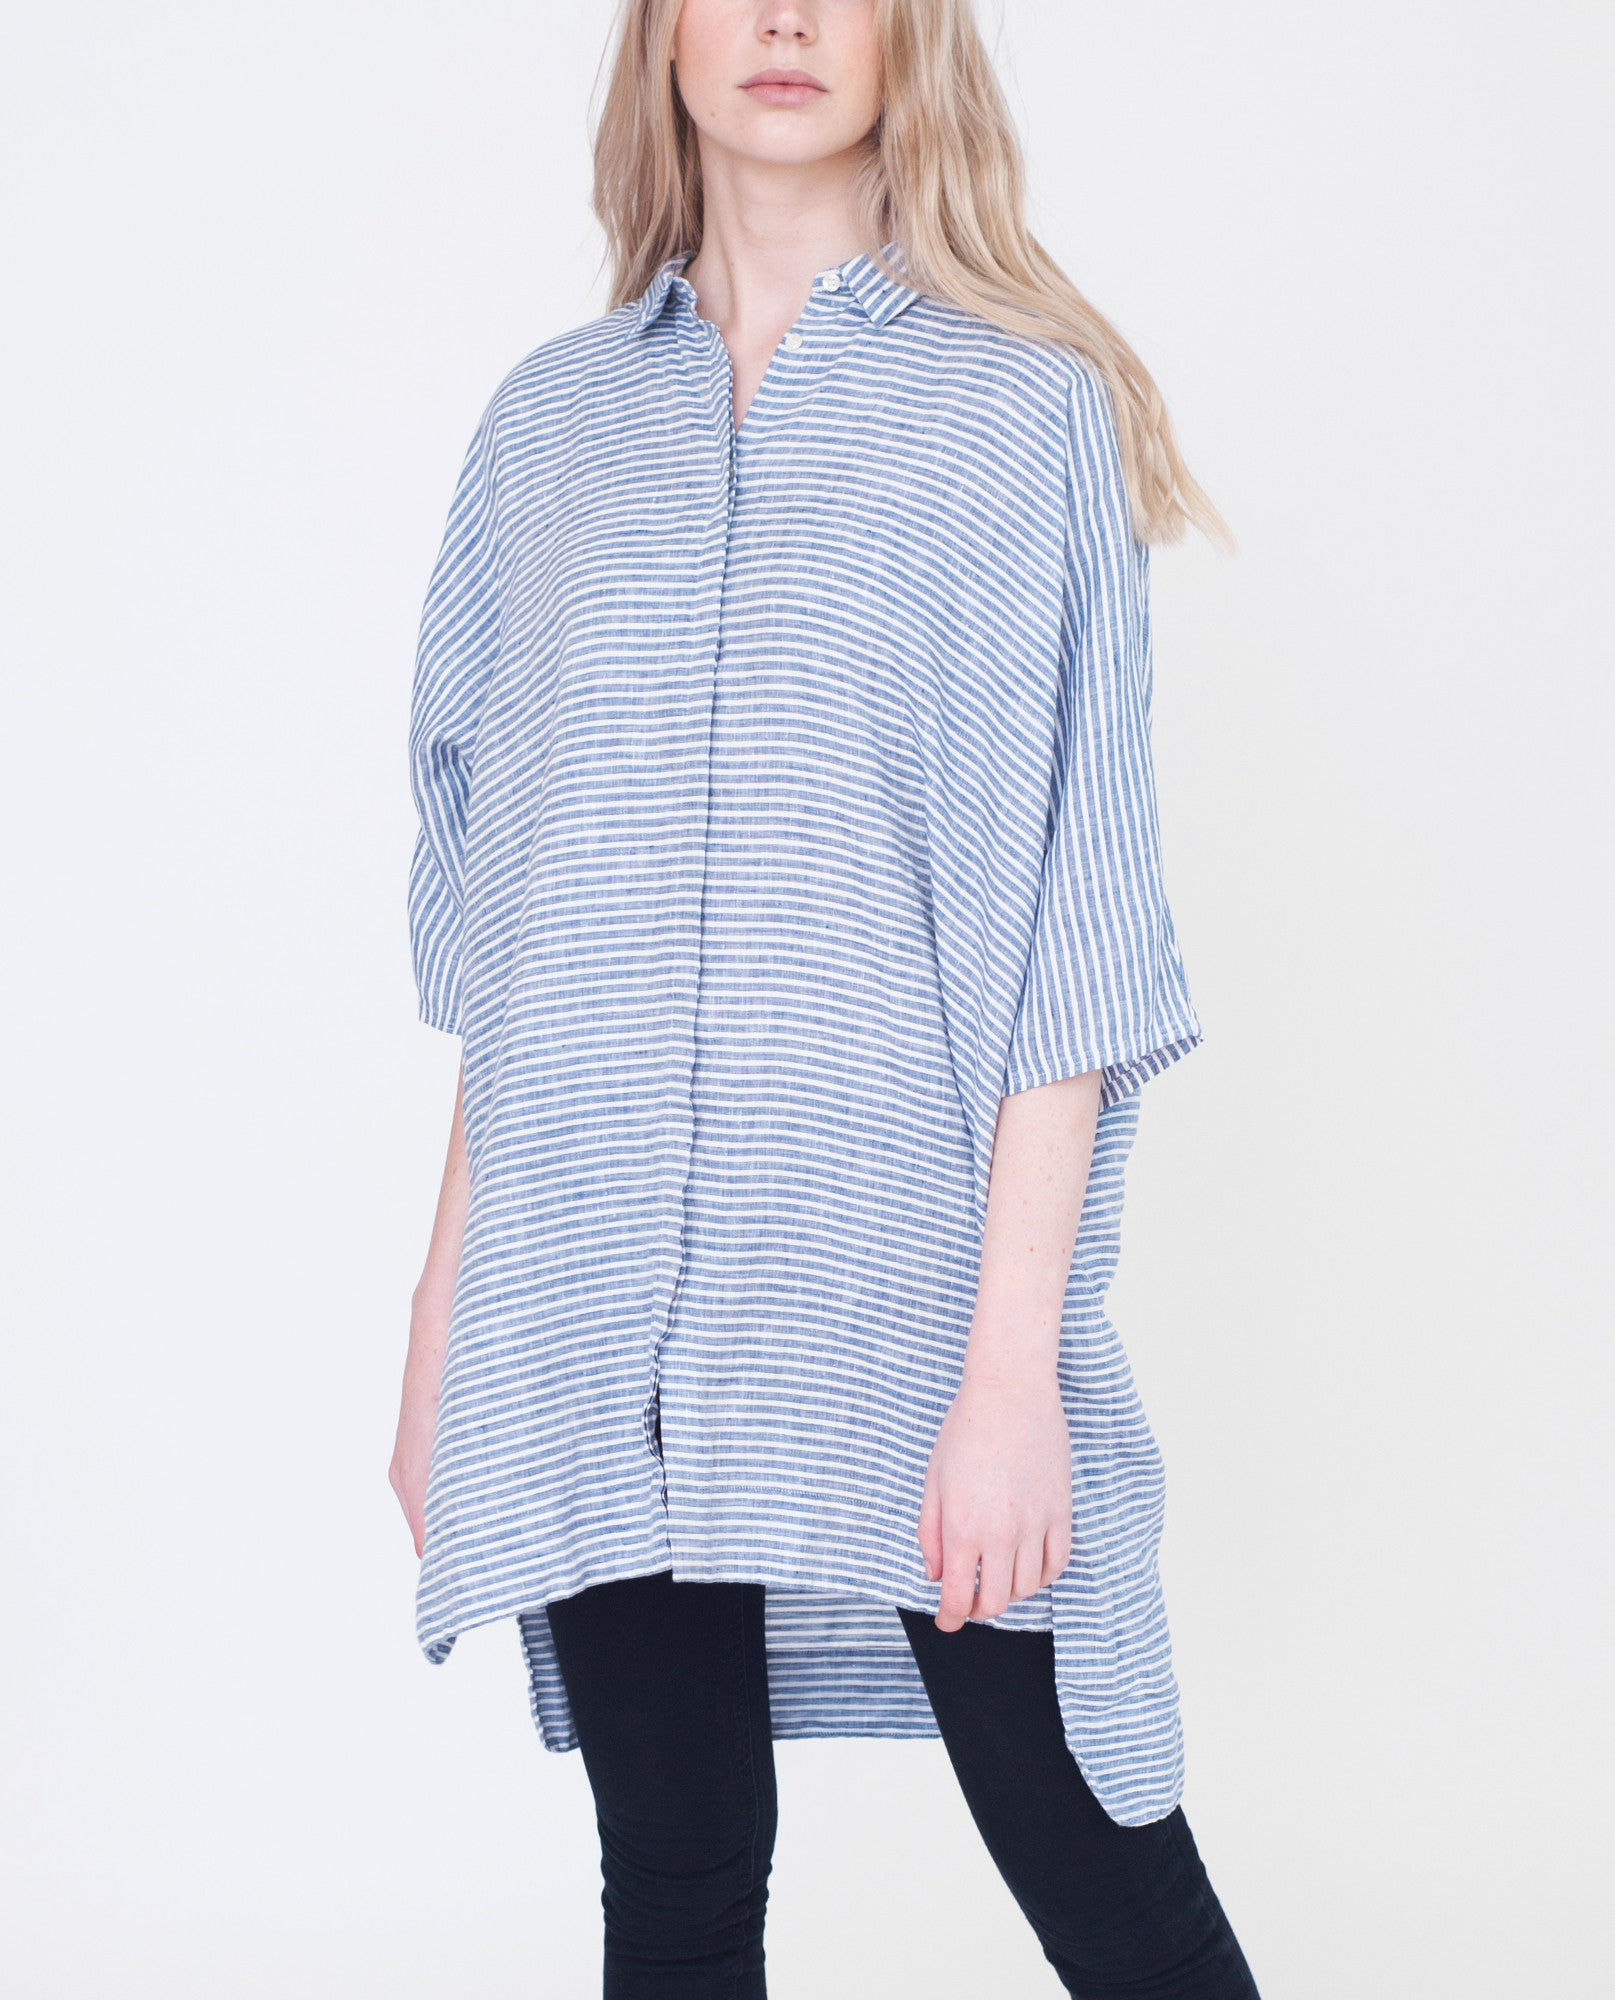 ROWENA Linen Striped Shirt from Beaumont Organic